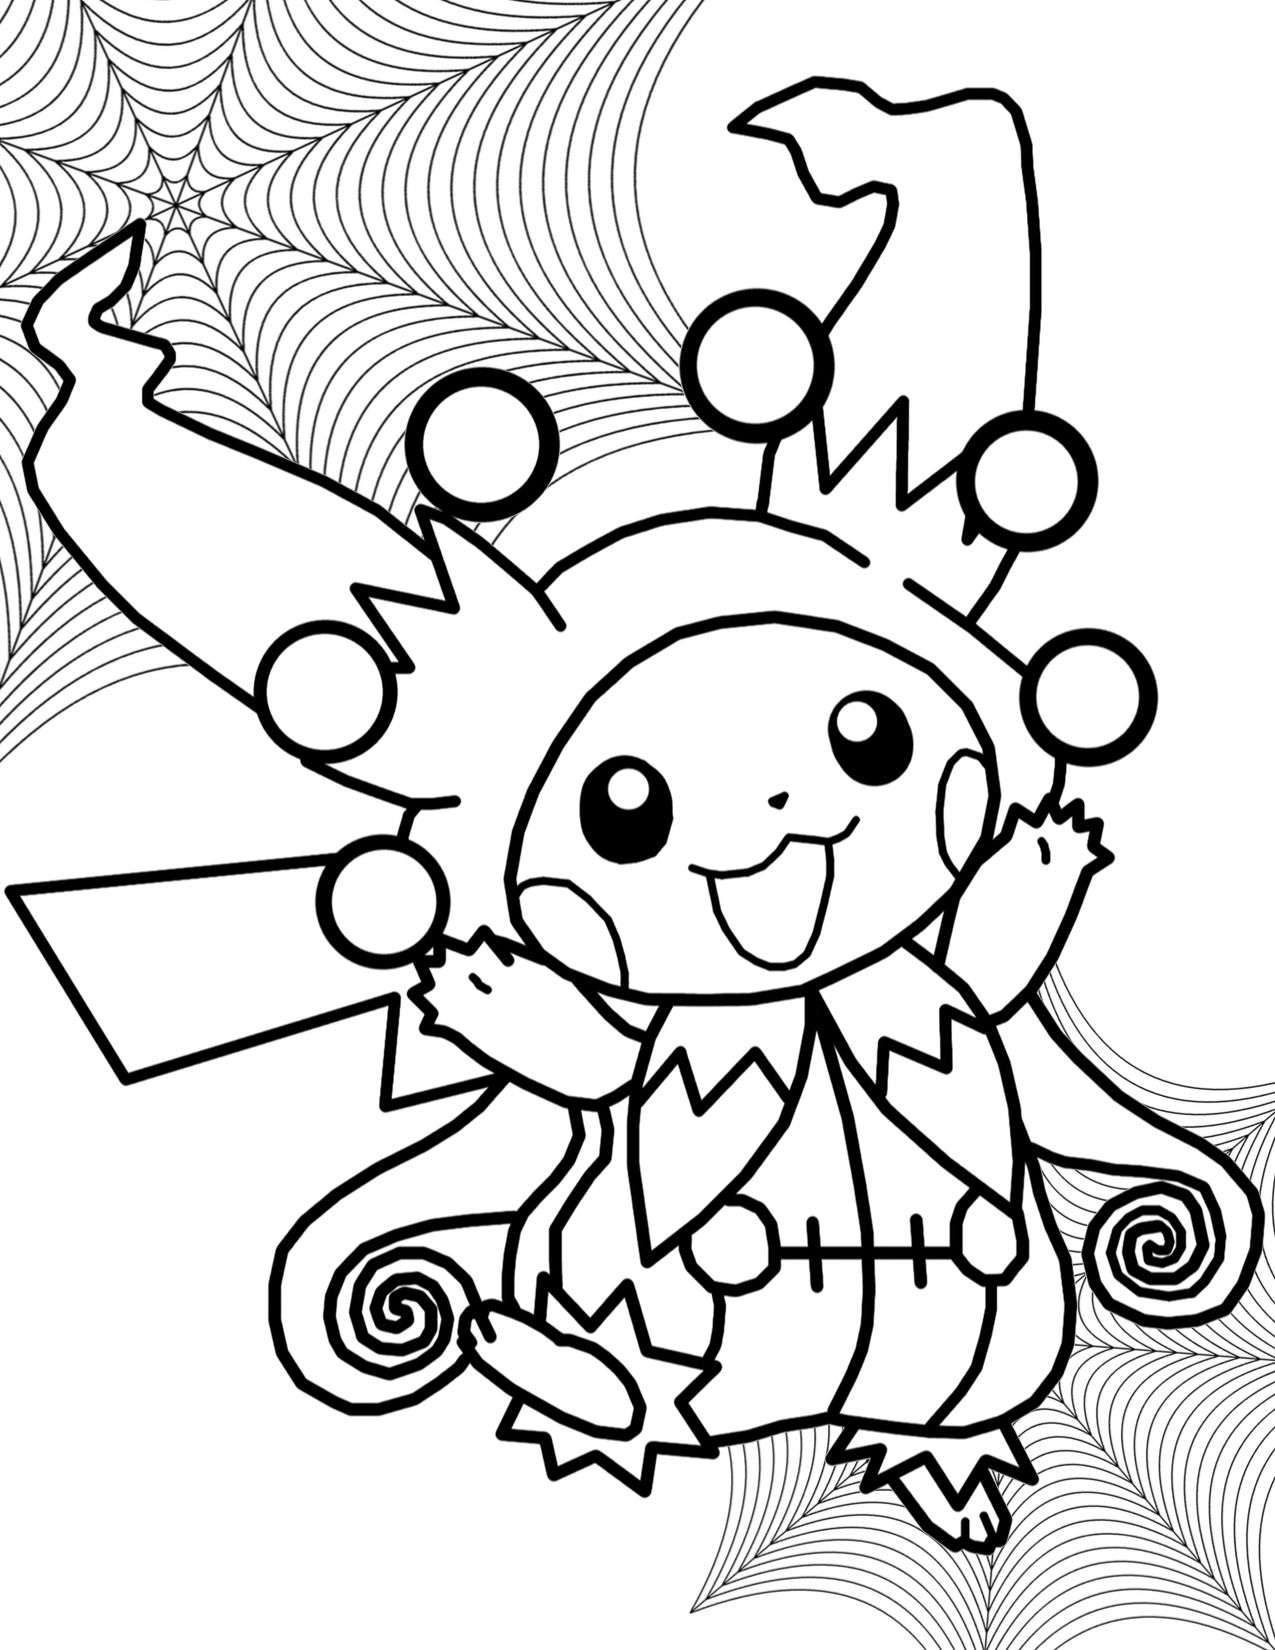 Pikachu Pokemon Coloring Pages Free Sheets Detective Colouring And Friends Printable Movie Ash Go Cute Top Halloween Costume Bee Hives Black Eyed Susan Page Di 2020